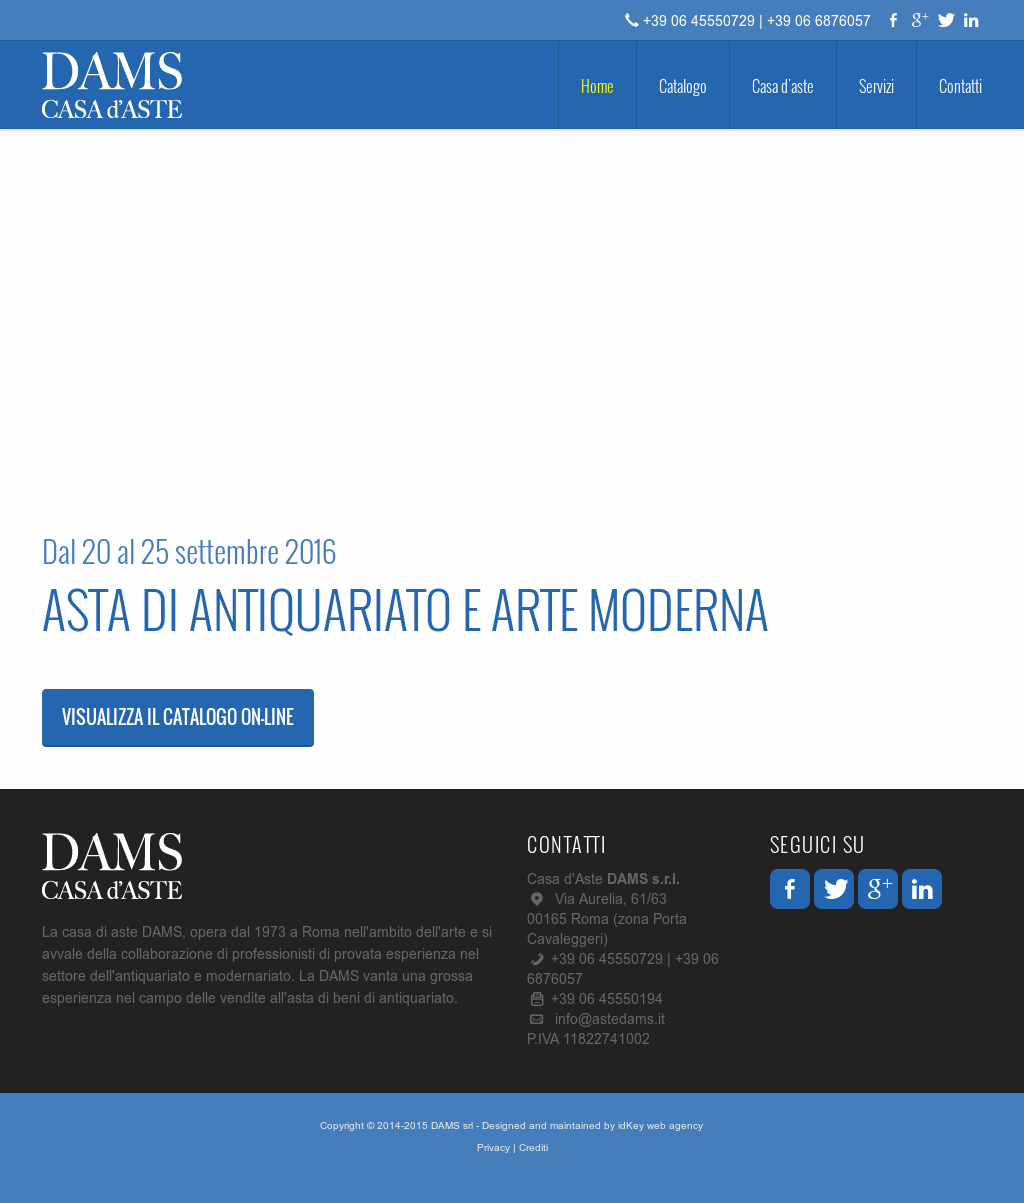 casa d'aste dams competitors, revenue and employees - owler company